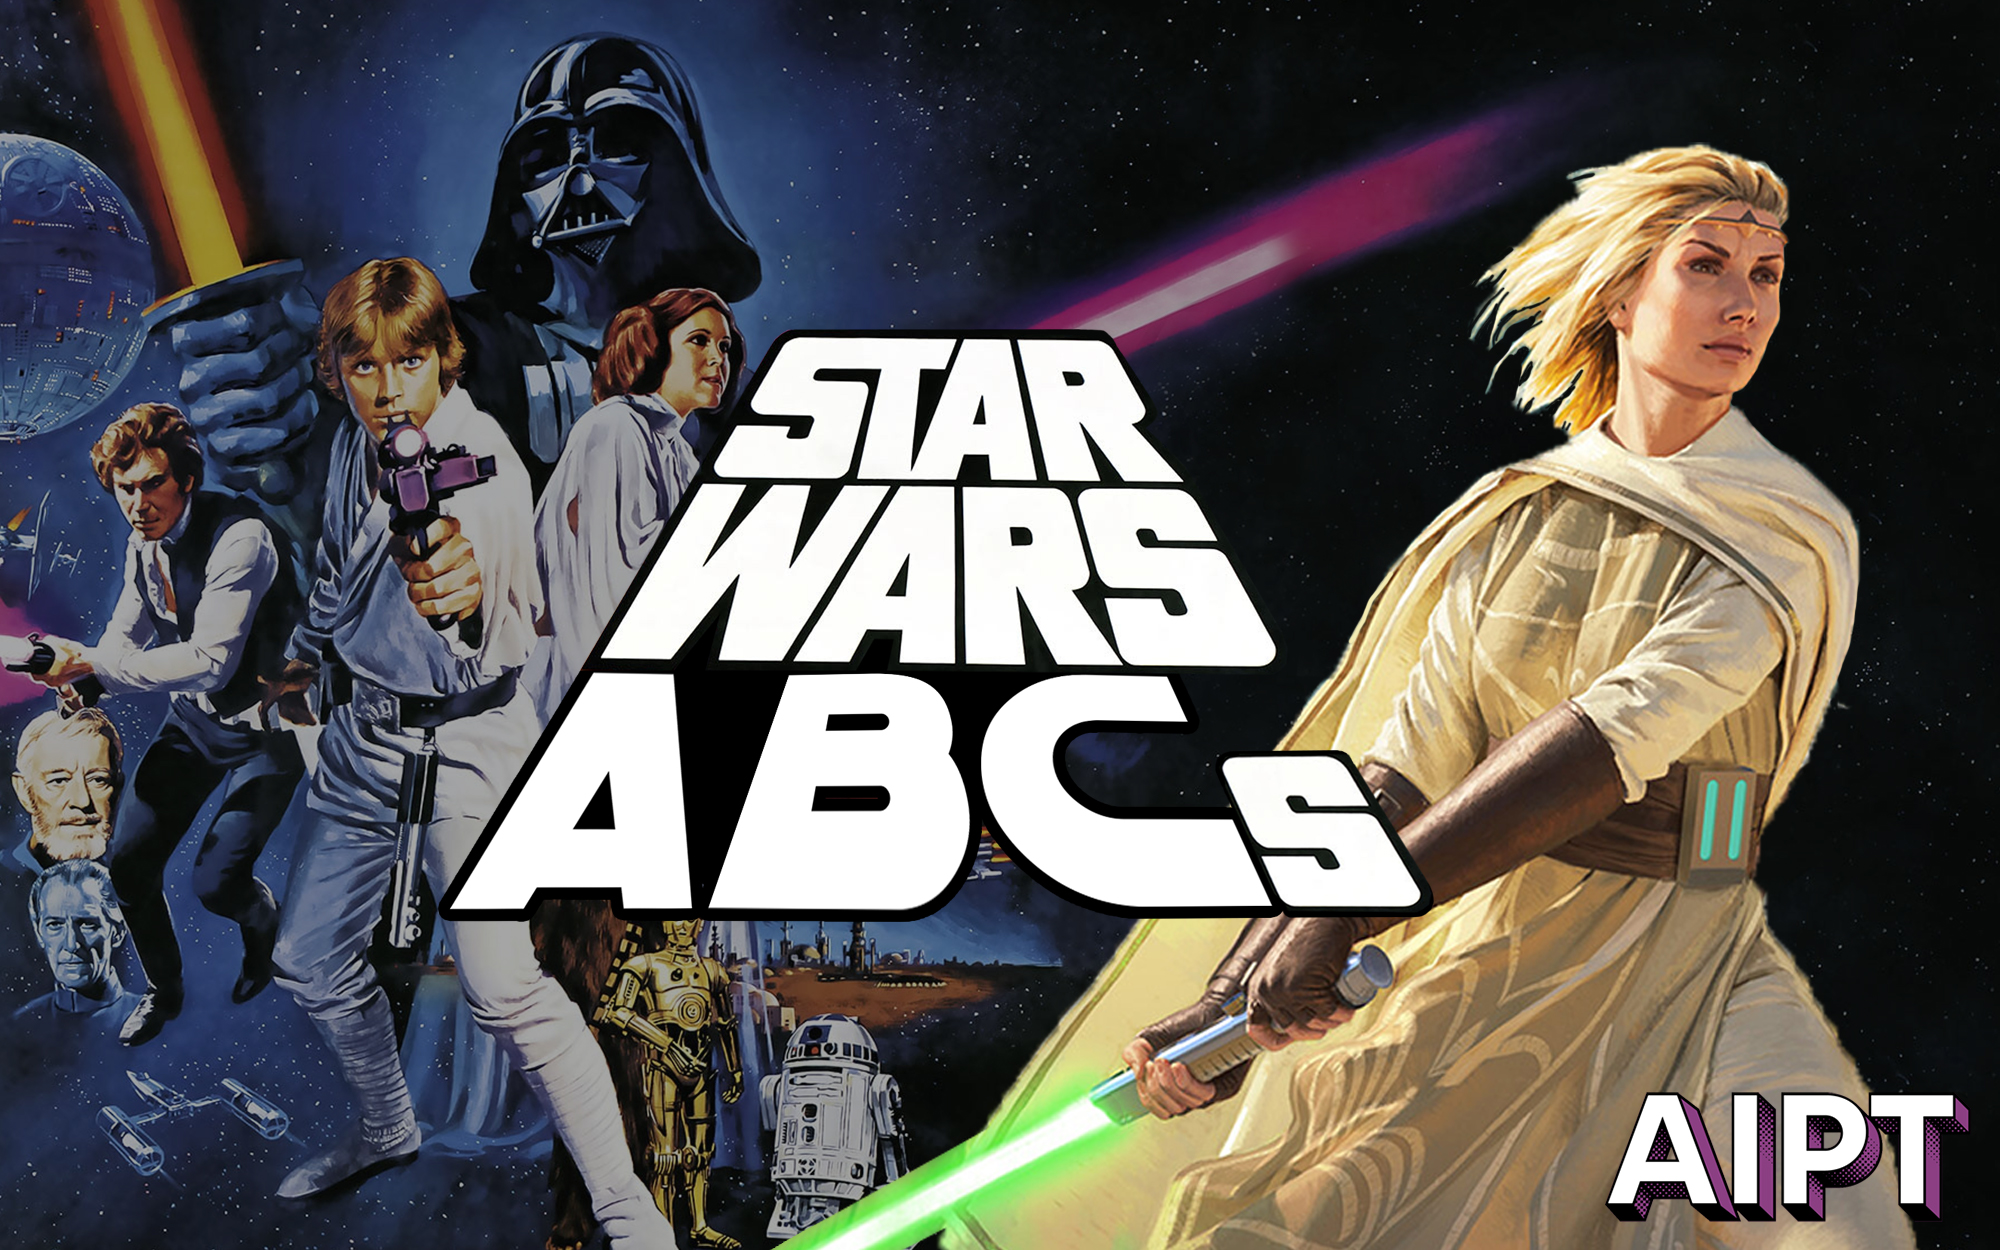 Star Wars ABCs: A is for Avar Kriss